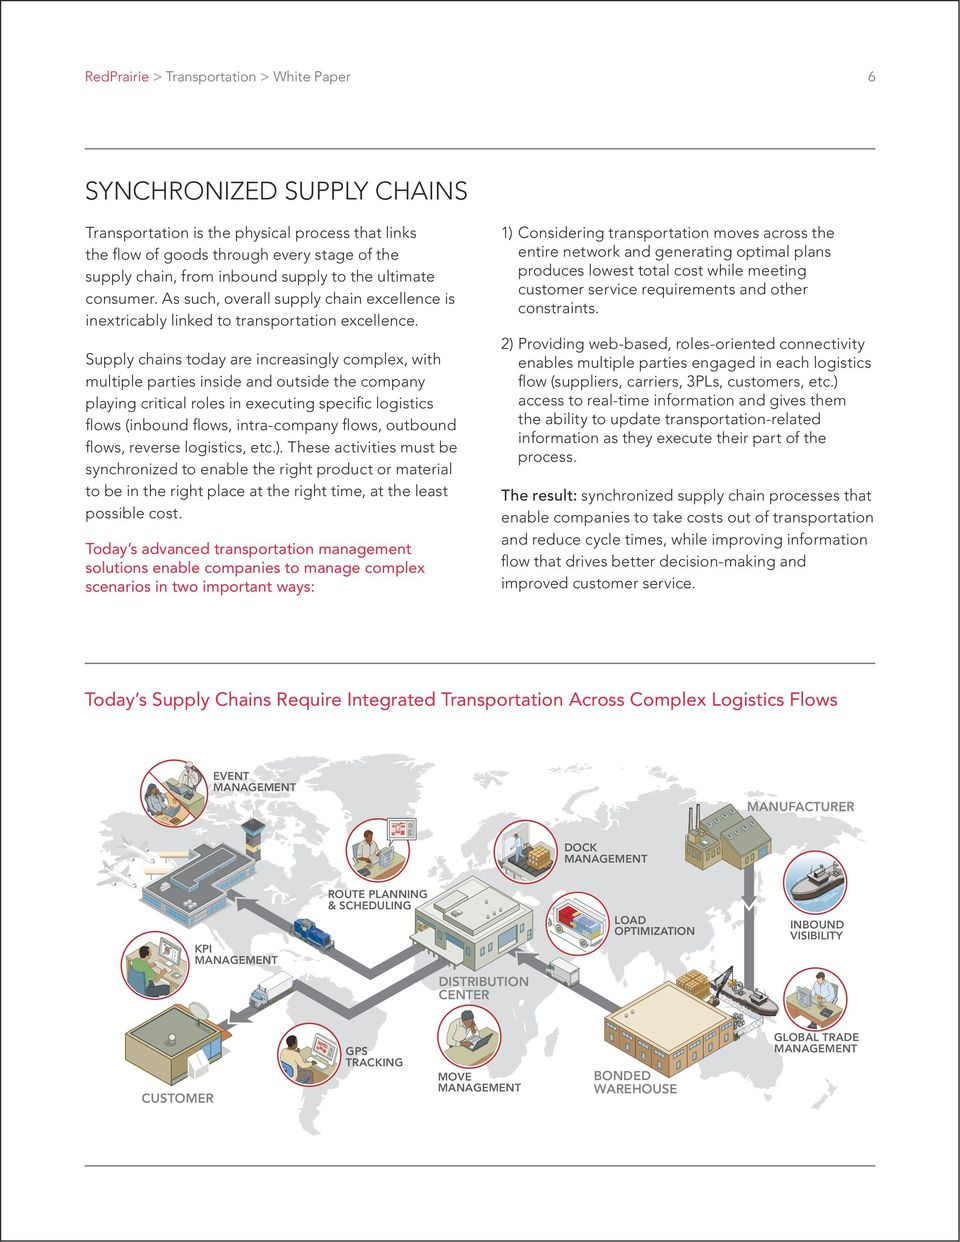 Supply chains today are increasingly complex, with multiple parties inside and outside the company playing critical roles in executing specific logistics flows (inbound flows, intra-company flows,